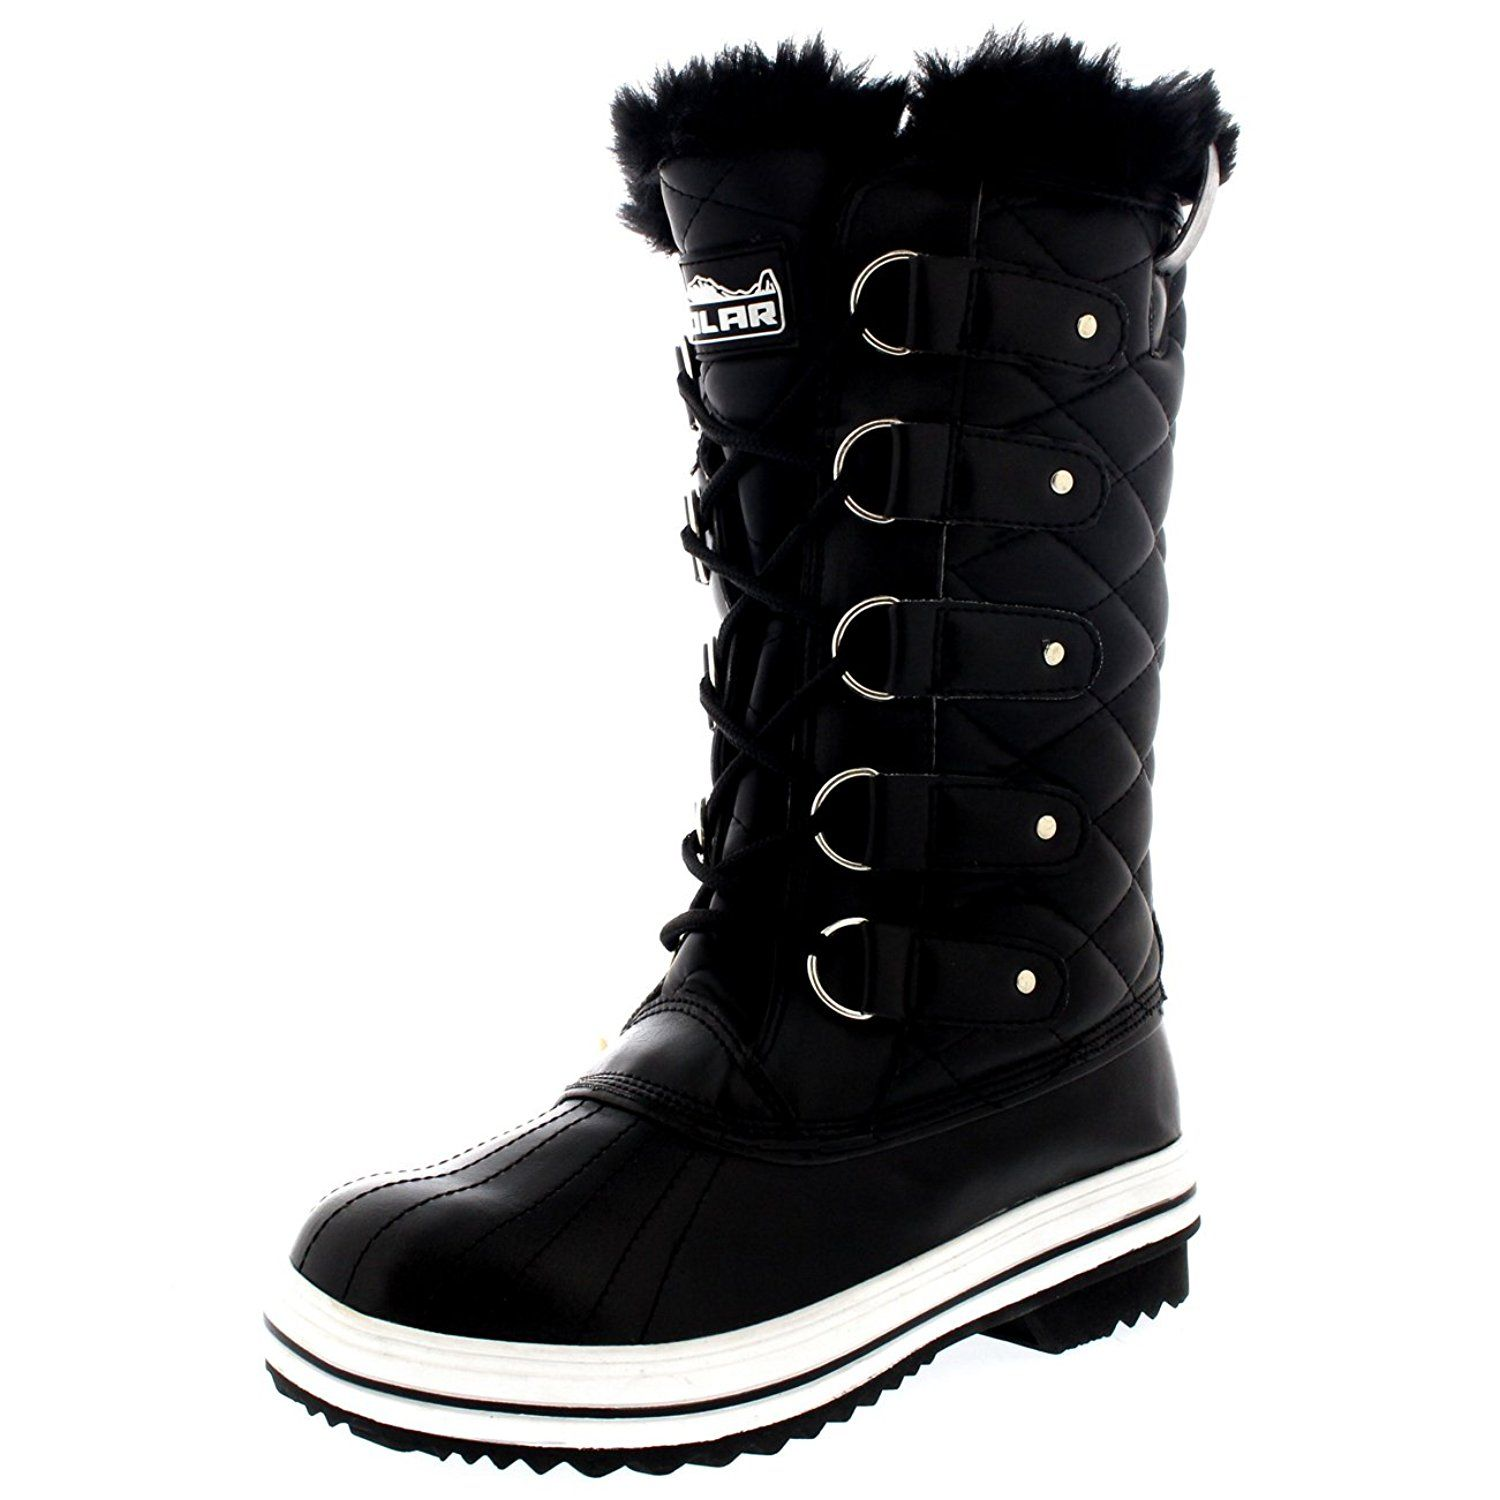 606920b00d8 Womens Snow Boot Nylon Tall Winter Snow Waterproof Fur Lined Warm ...